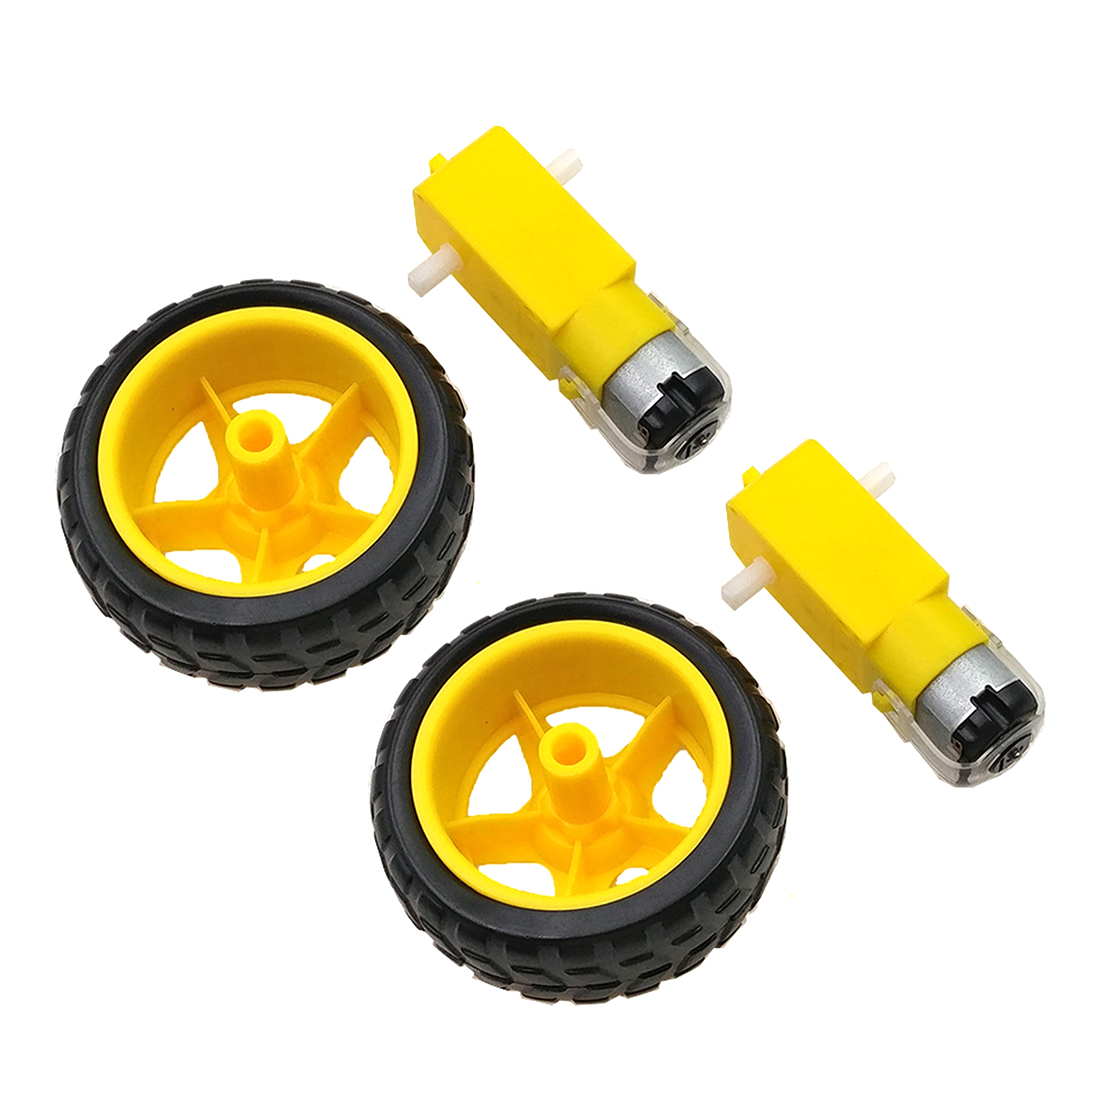 Modiker High Tech 2Pcs Small Smart Balance Car Tyres Wheel Robot Chassis Kit With DC Speed Reduction Motor Programmable Toys